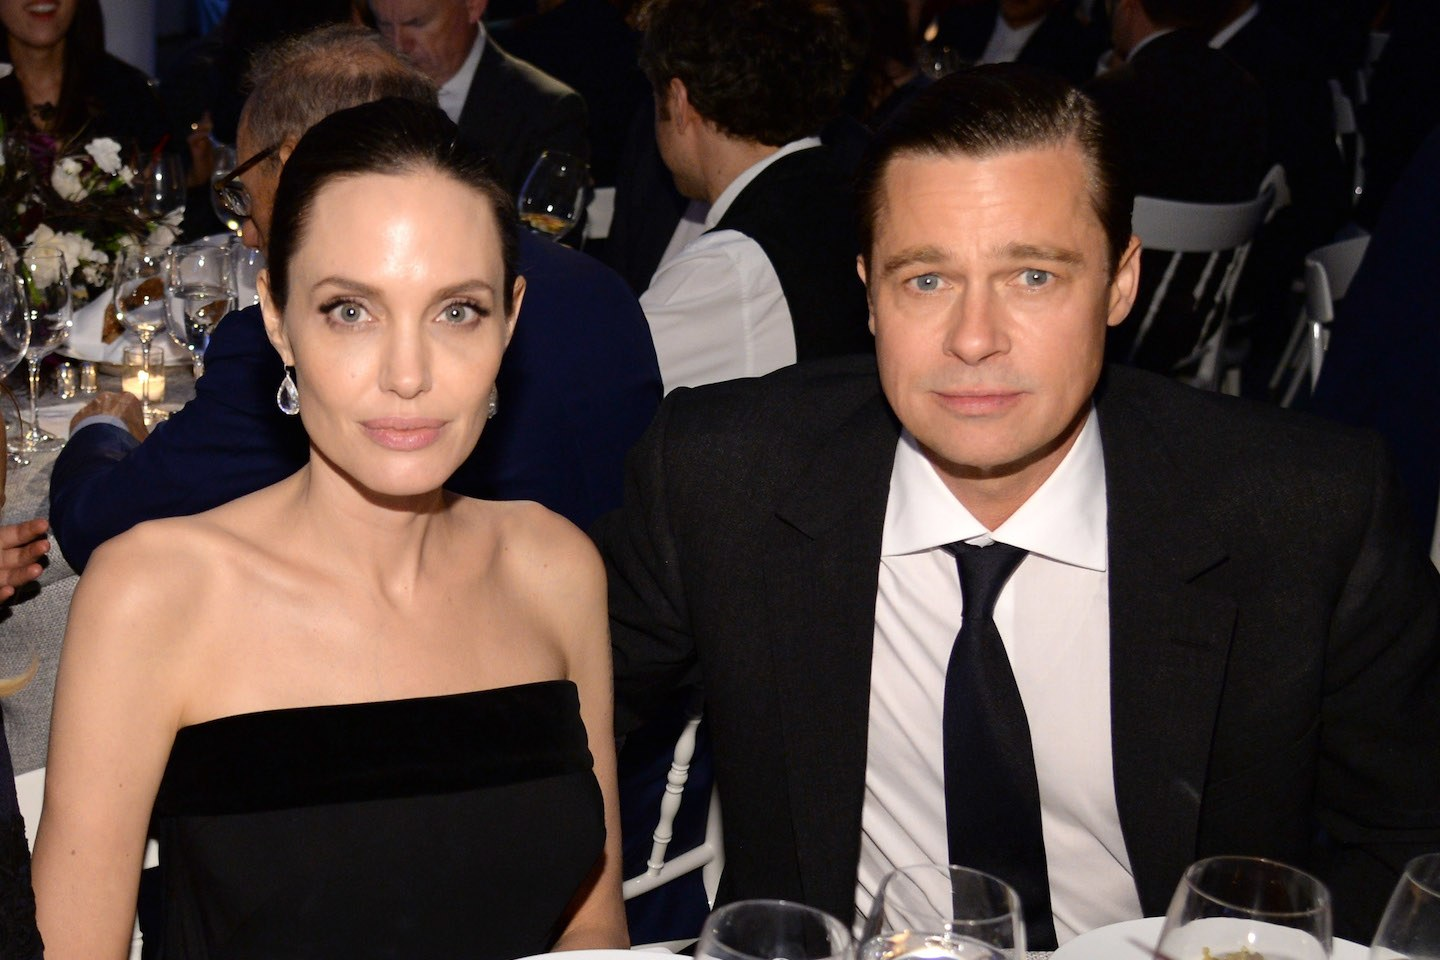 """brad-pitt-and-angelina-jolie-photographed-together-in-public-for-the-first-time-since-their-split-details"""